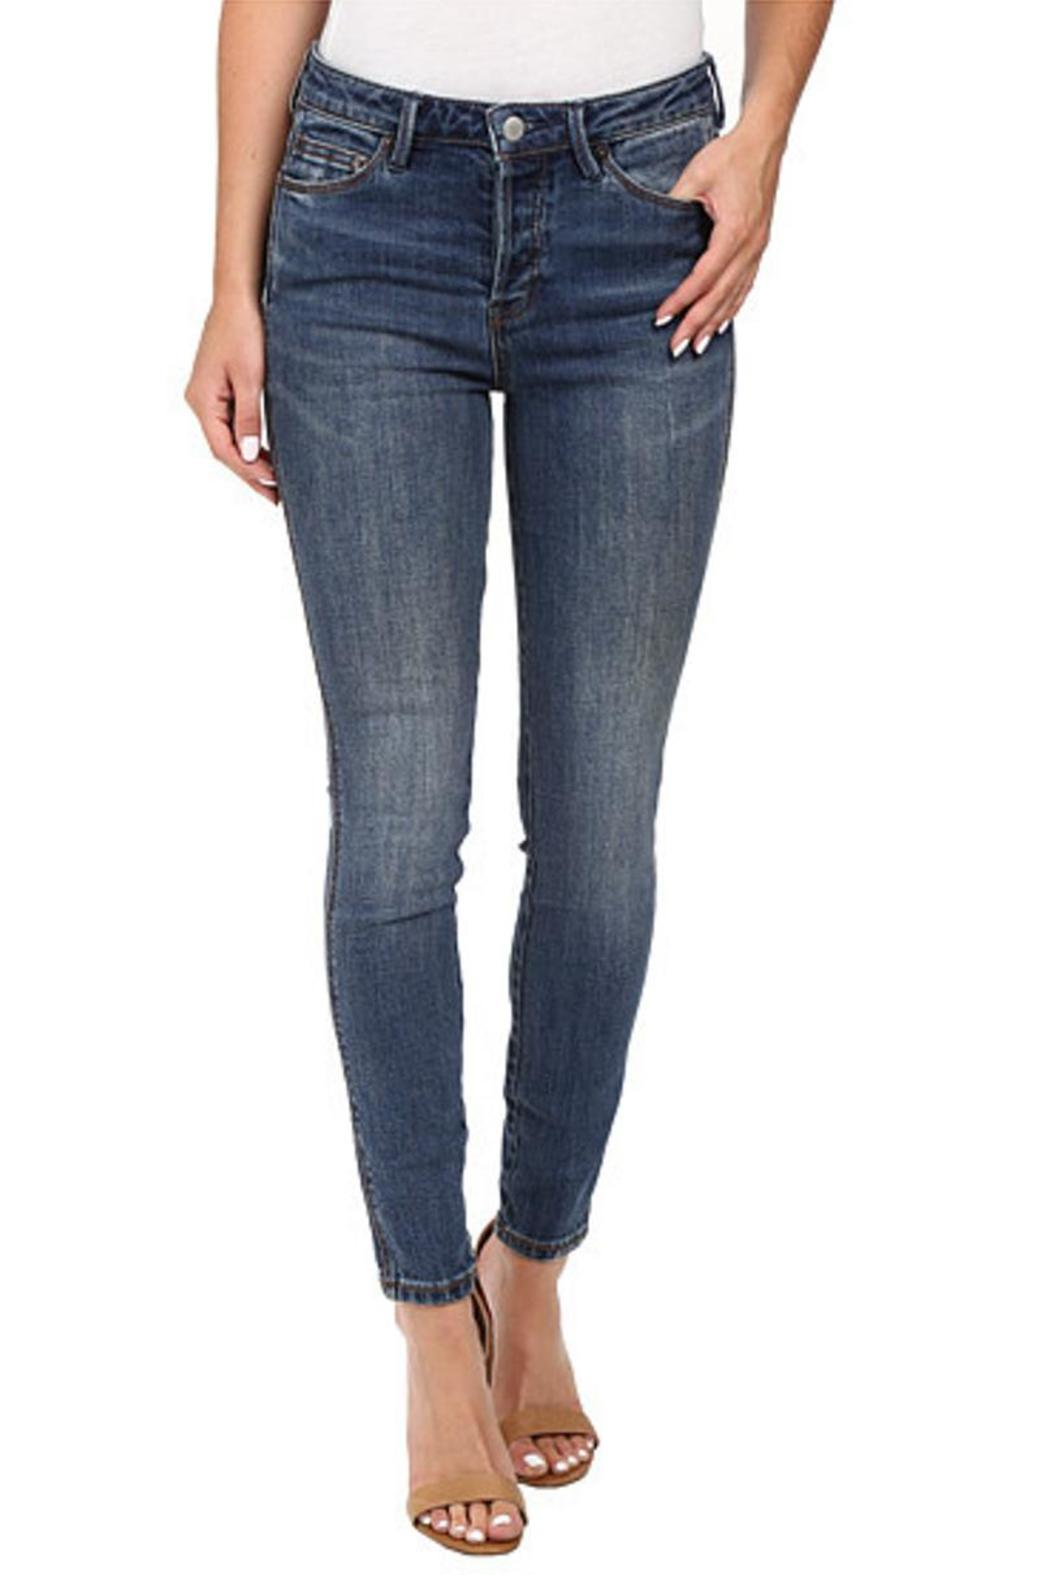 Free People Peyton High Rise Jeans - Main Image